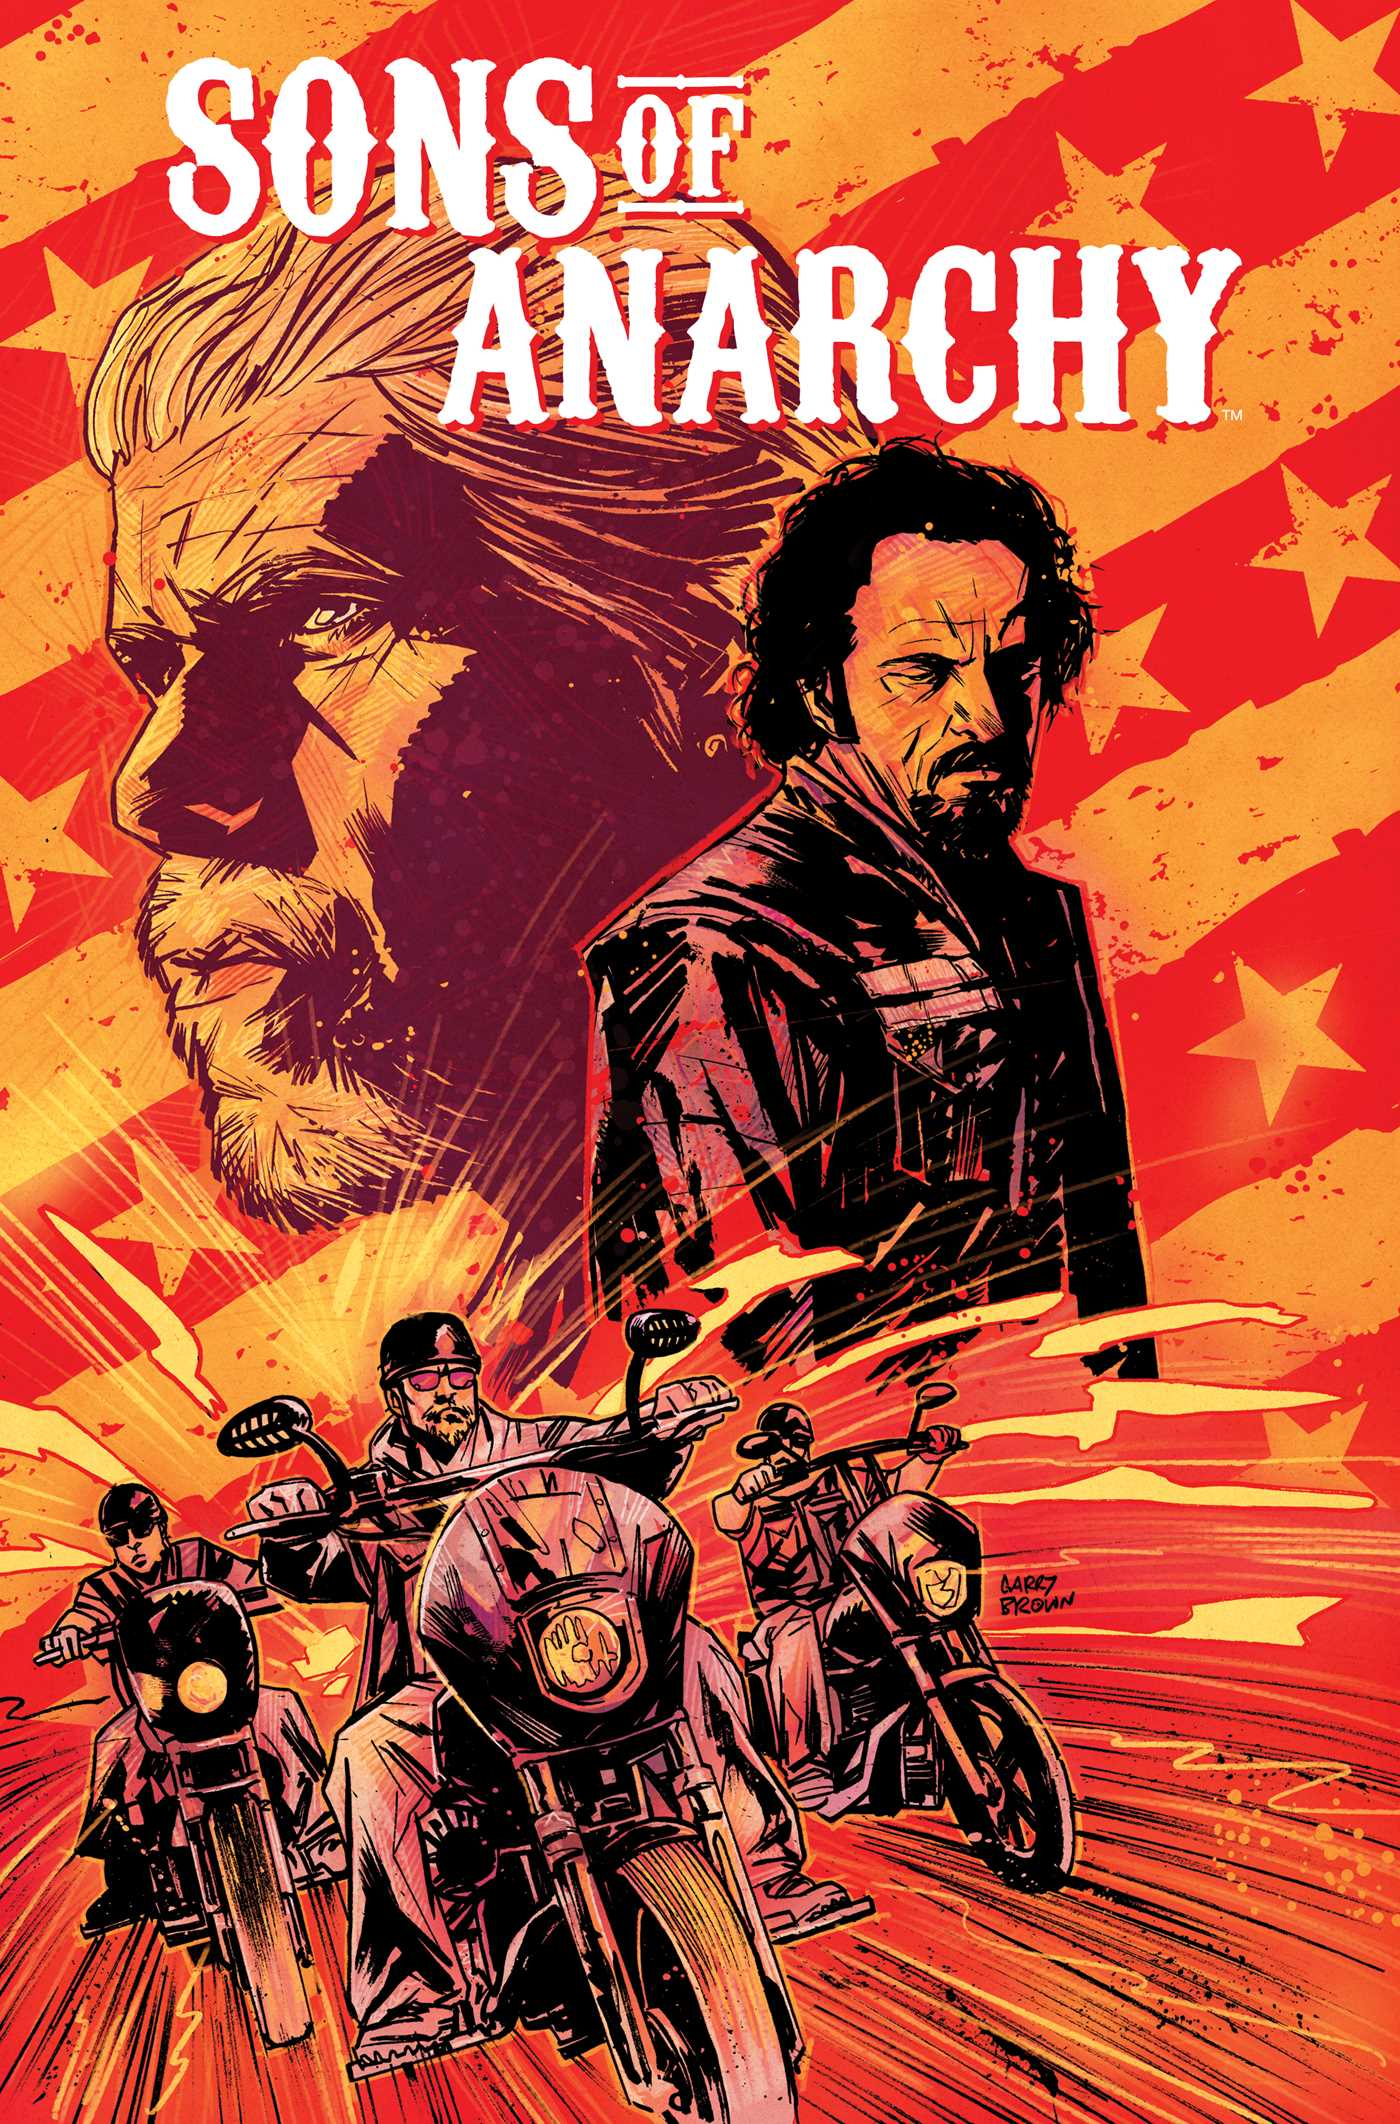 Sons-of-anarchy-vol-1-9781608864027_hr